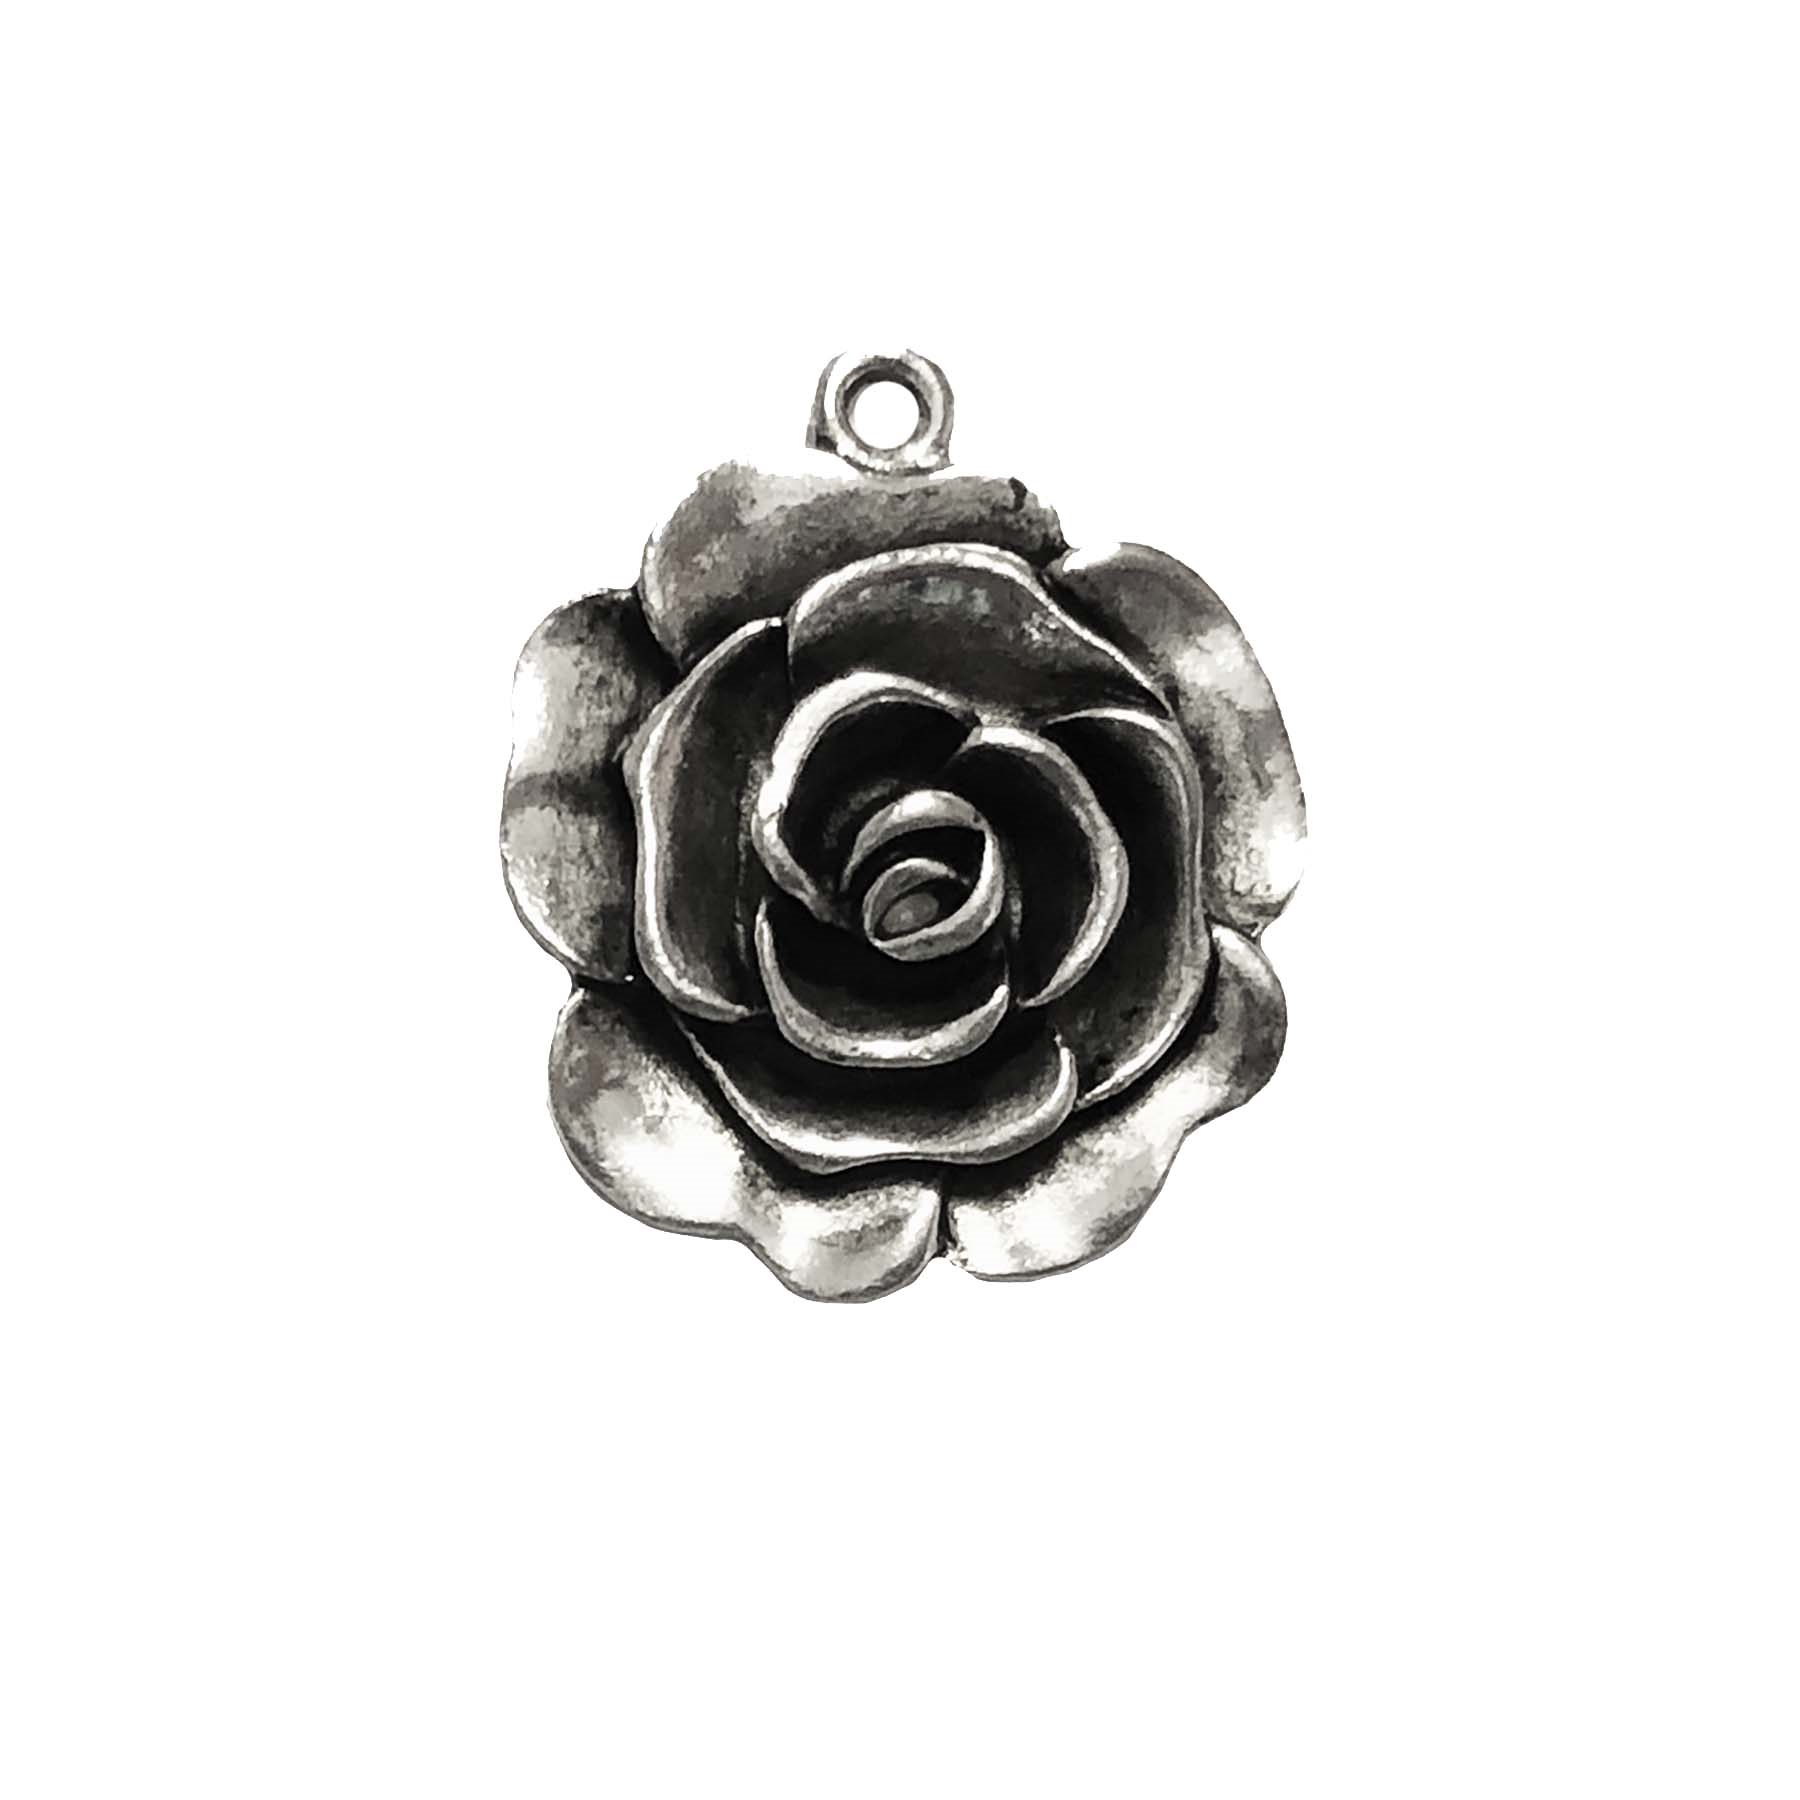 old silver, nickel free,rose,rose charms, lead free, pewter castings, cast pewter jewelry parts, vintage, 1928 Jewelry, B'sue Boutiques, B'sue by 1928, silver charms, vintage charms, vintage jewelry findings,pewter, pewter jewelry findings,made in the USA